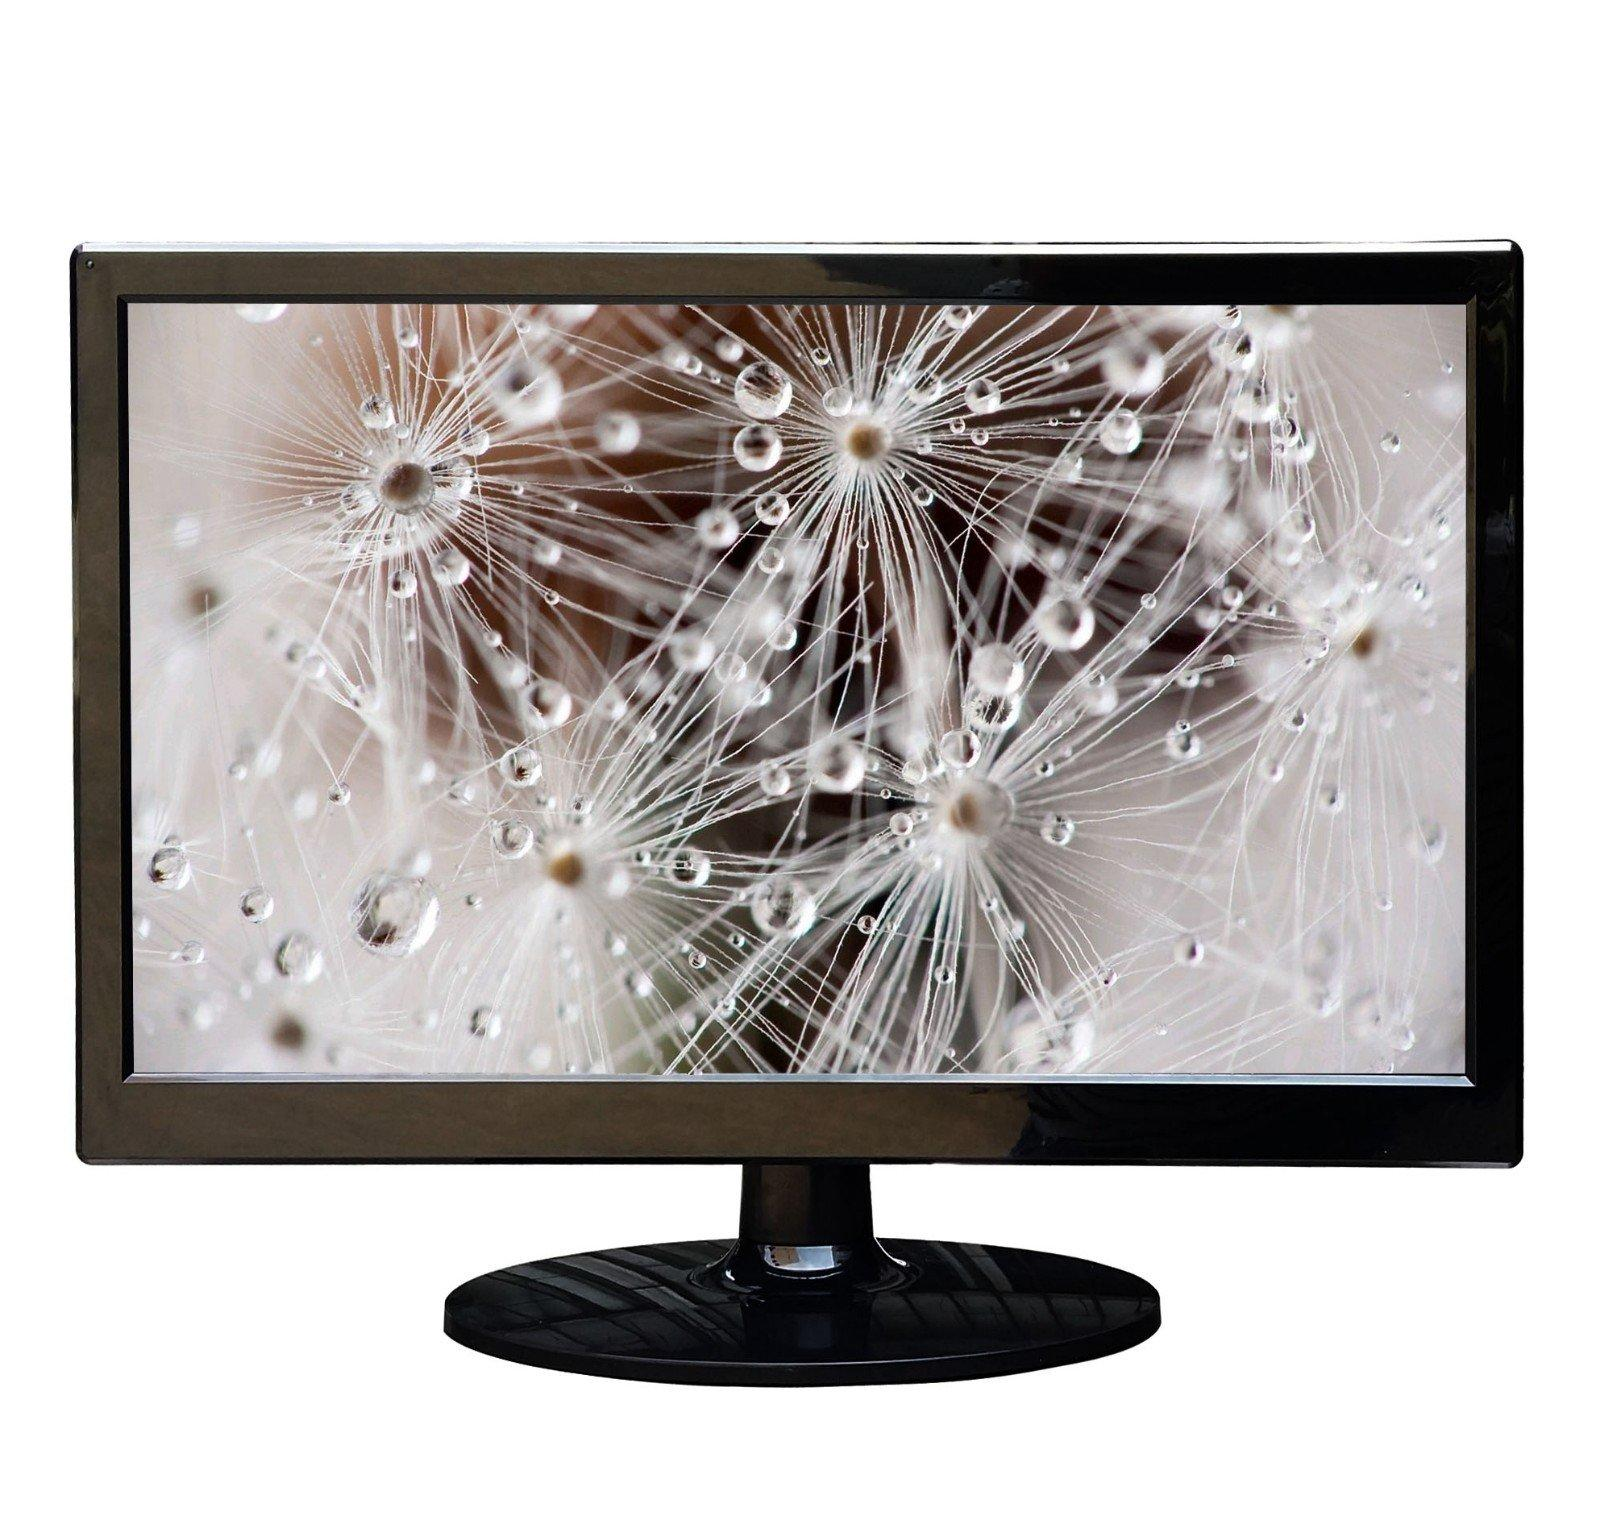 Xinyao LCD low price 18 inch monitor with slim led backlight for lcd tv screen-1